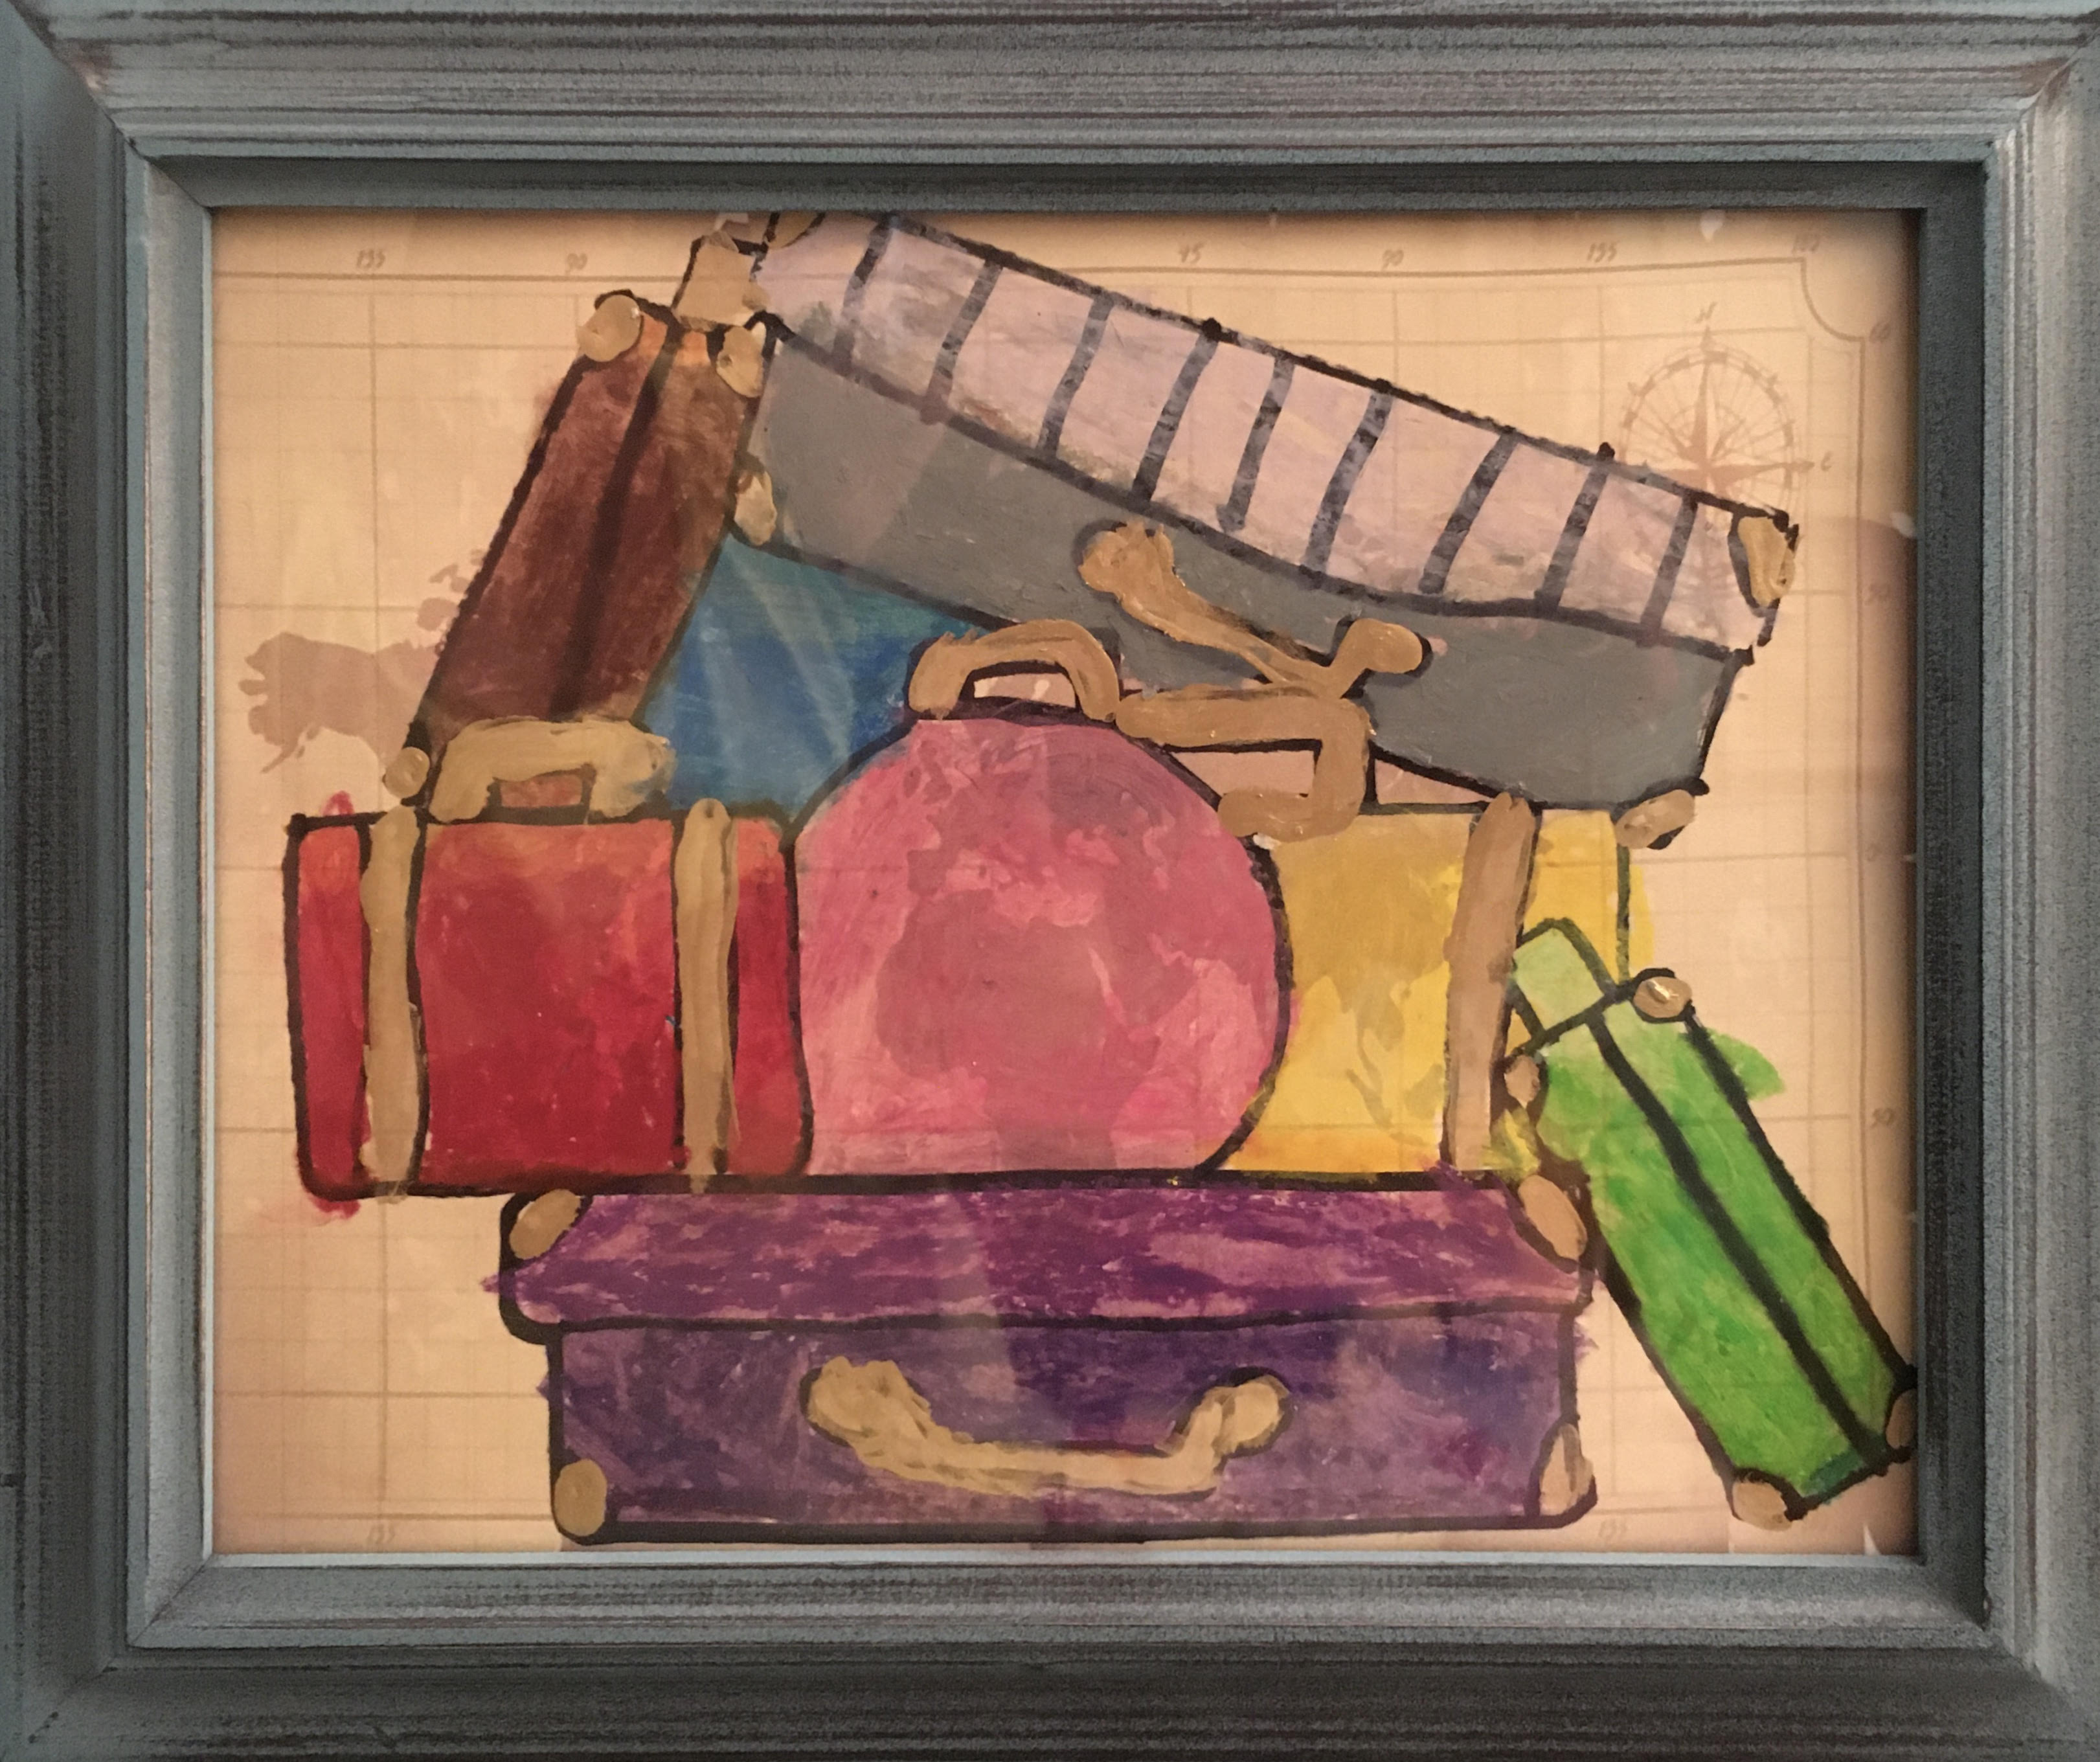 Suitcases by Natalie Montes